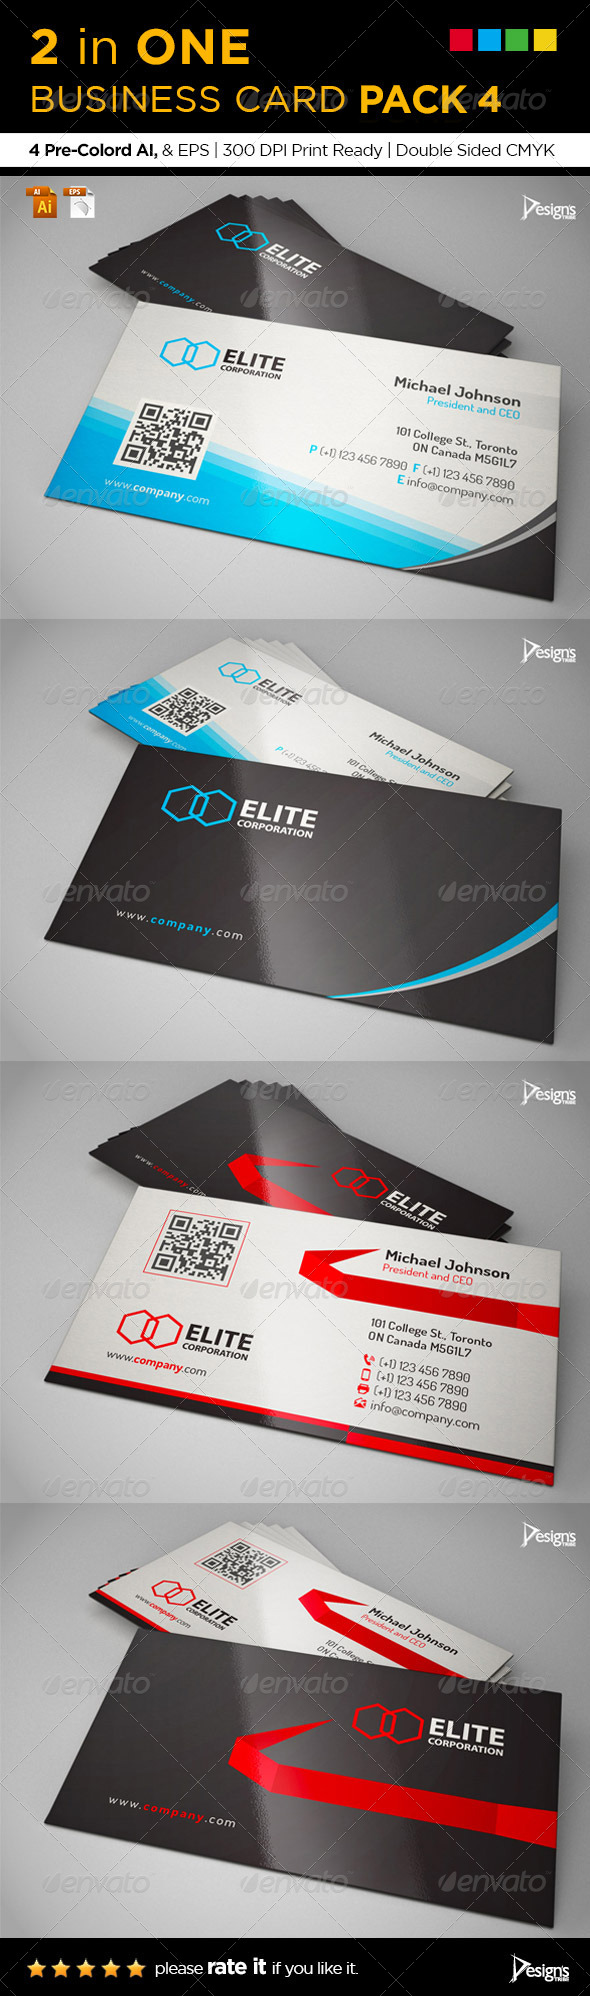 GraphicRiver 2 in One Business Card Pack 4 7504804